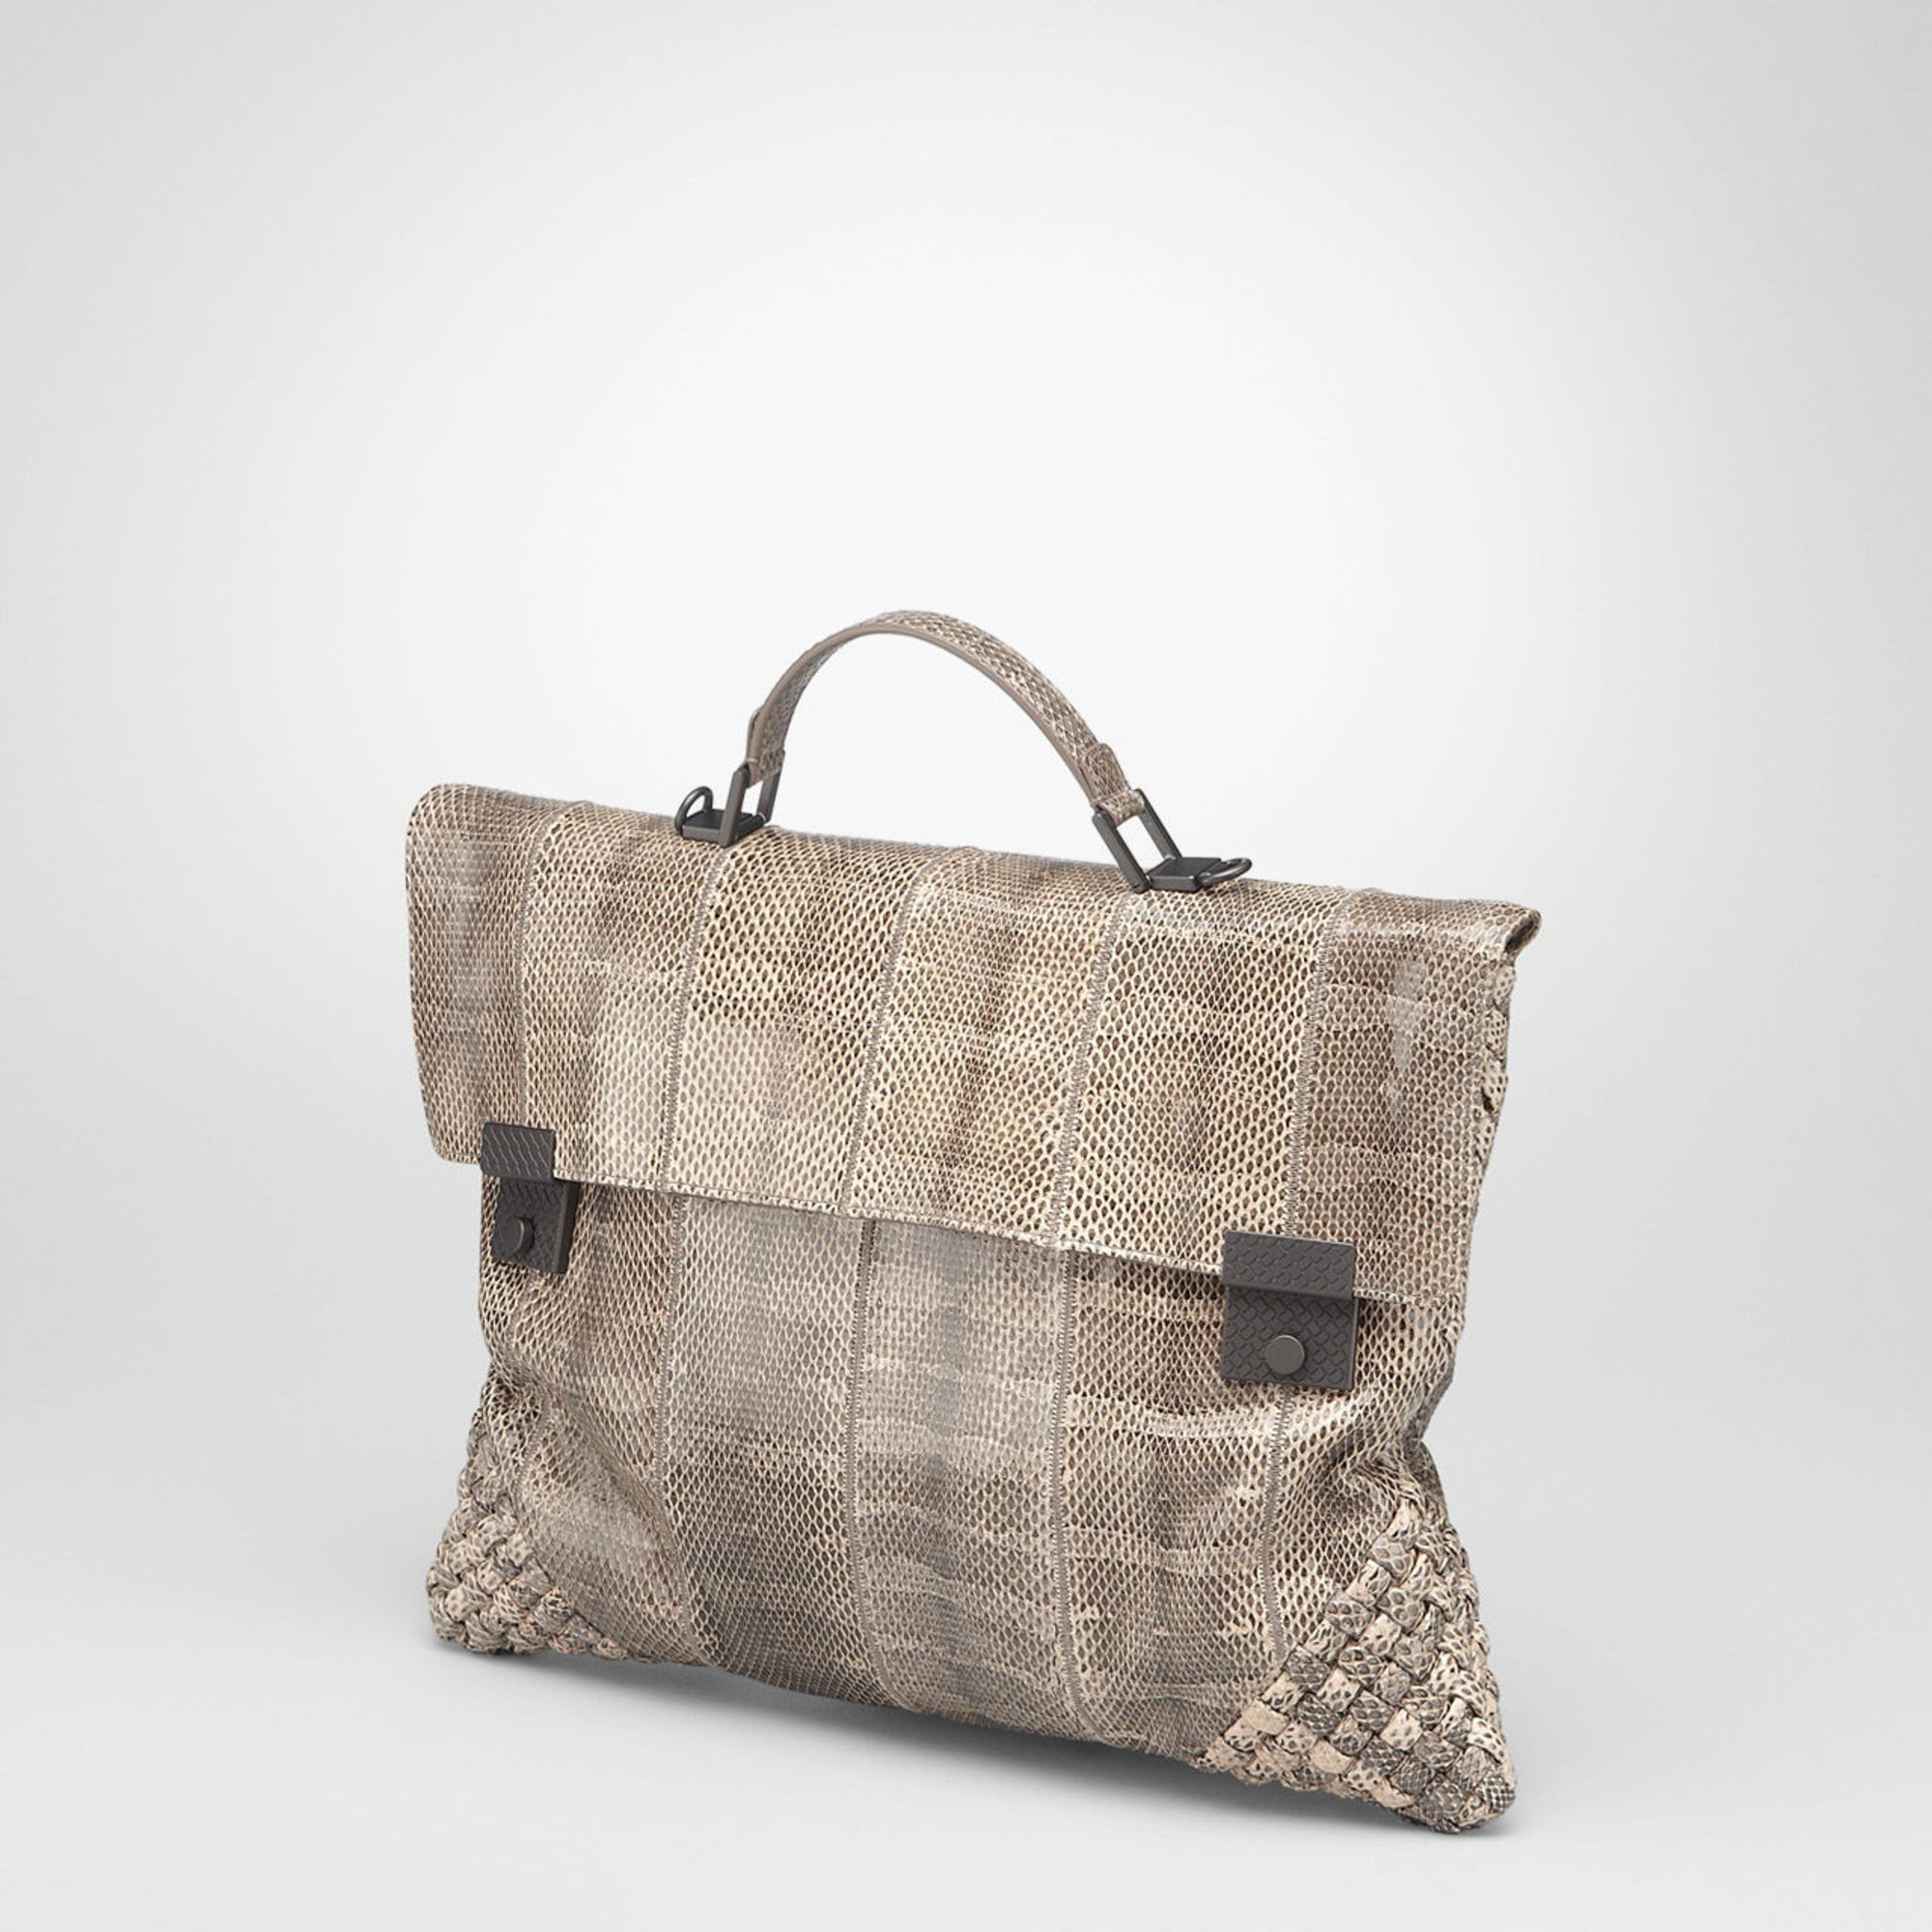 Borse Bottega Veneta 2013 : Bottega veneta ayers studio bag in brown poussin lyst